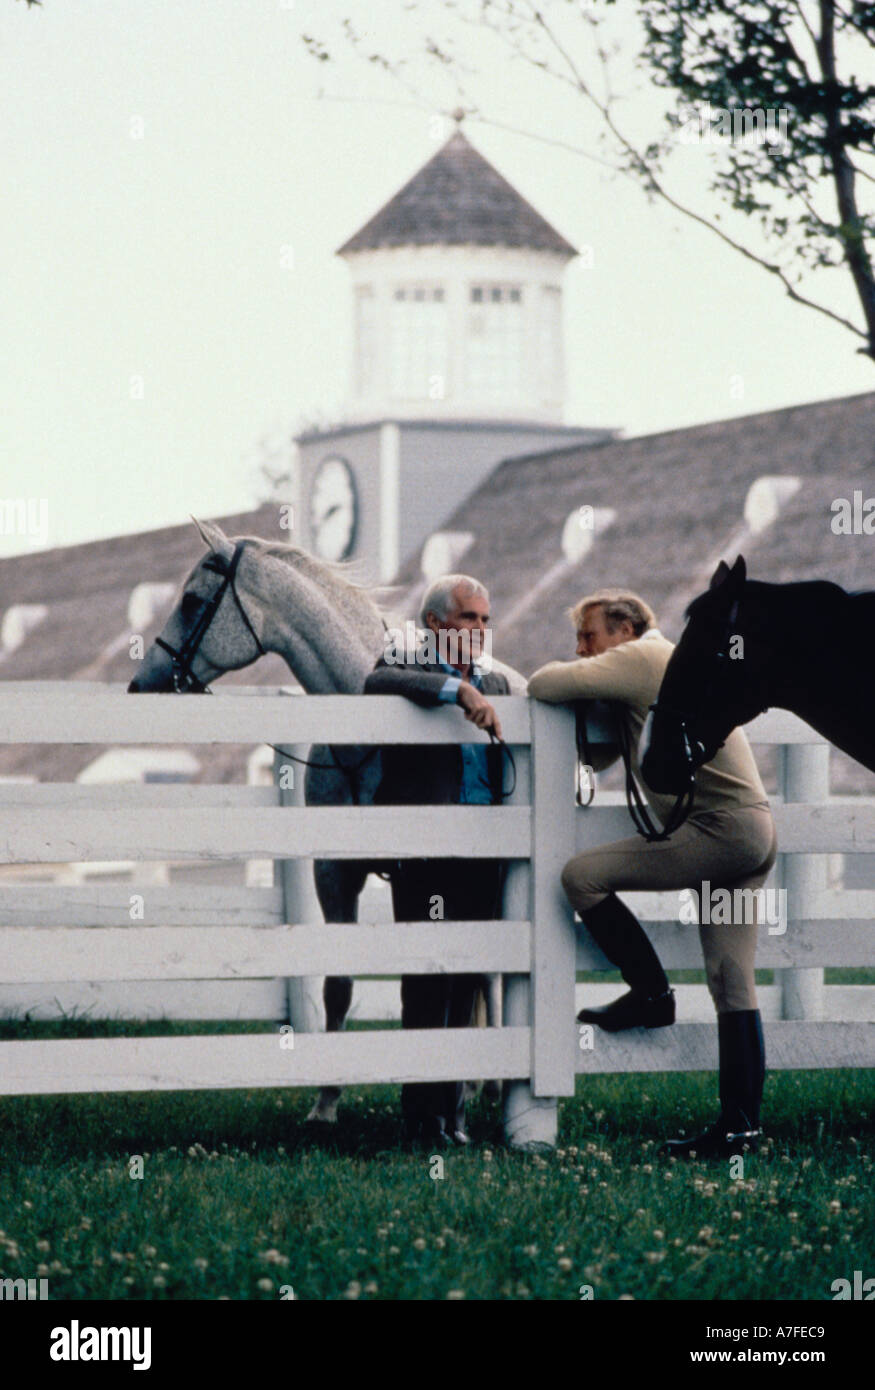 Two men in riding clothing standing with horses and talking over a white wooden fence Stock Photo